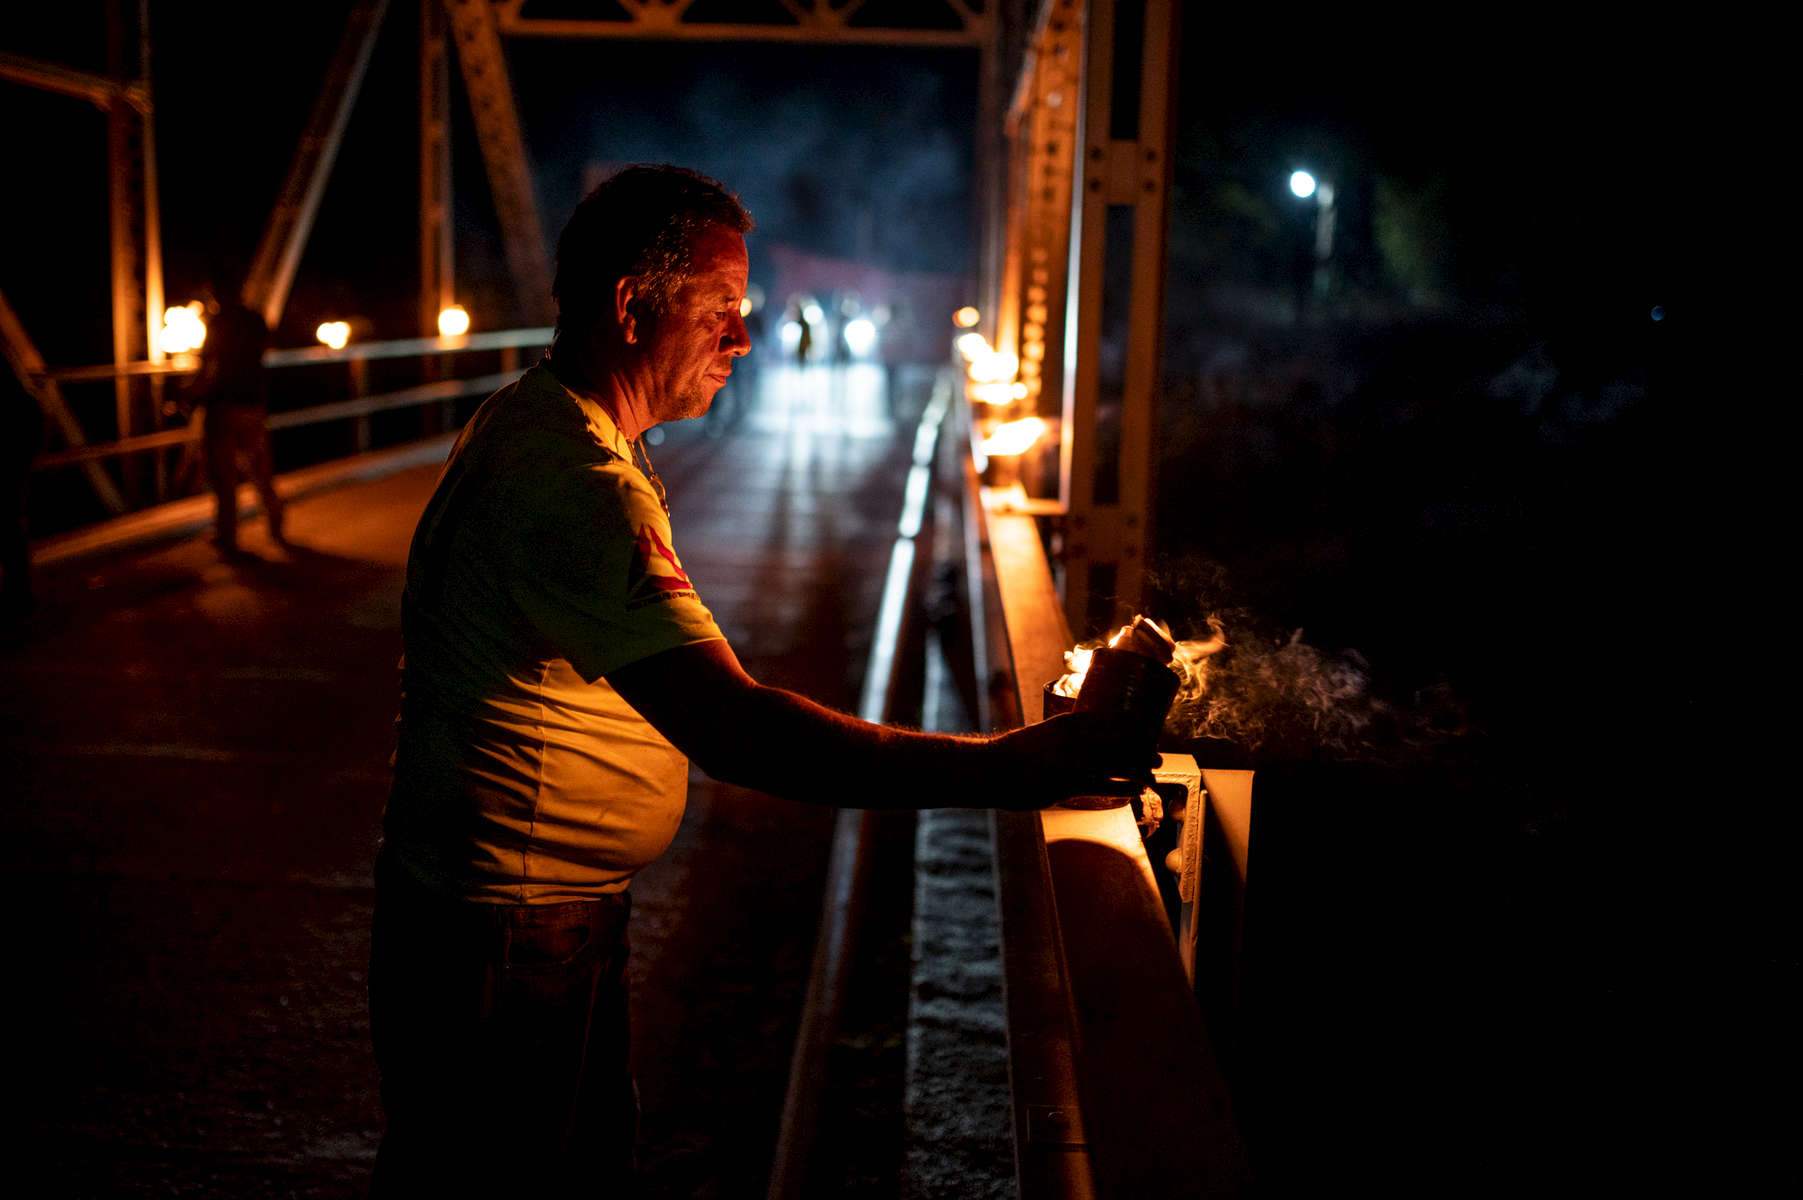 A man lights a candle to illuminate the Ubico bridge outside of Panajachel during the Maundy Thursday procession in Panajachel, Guatemala.